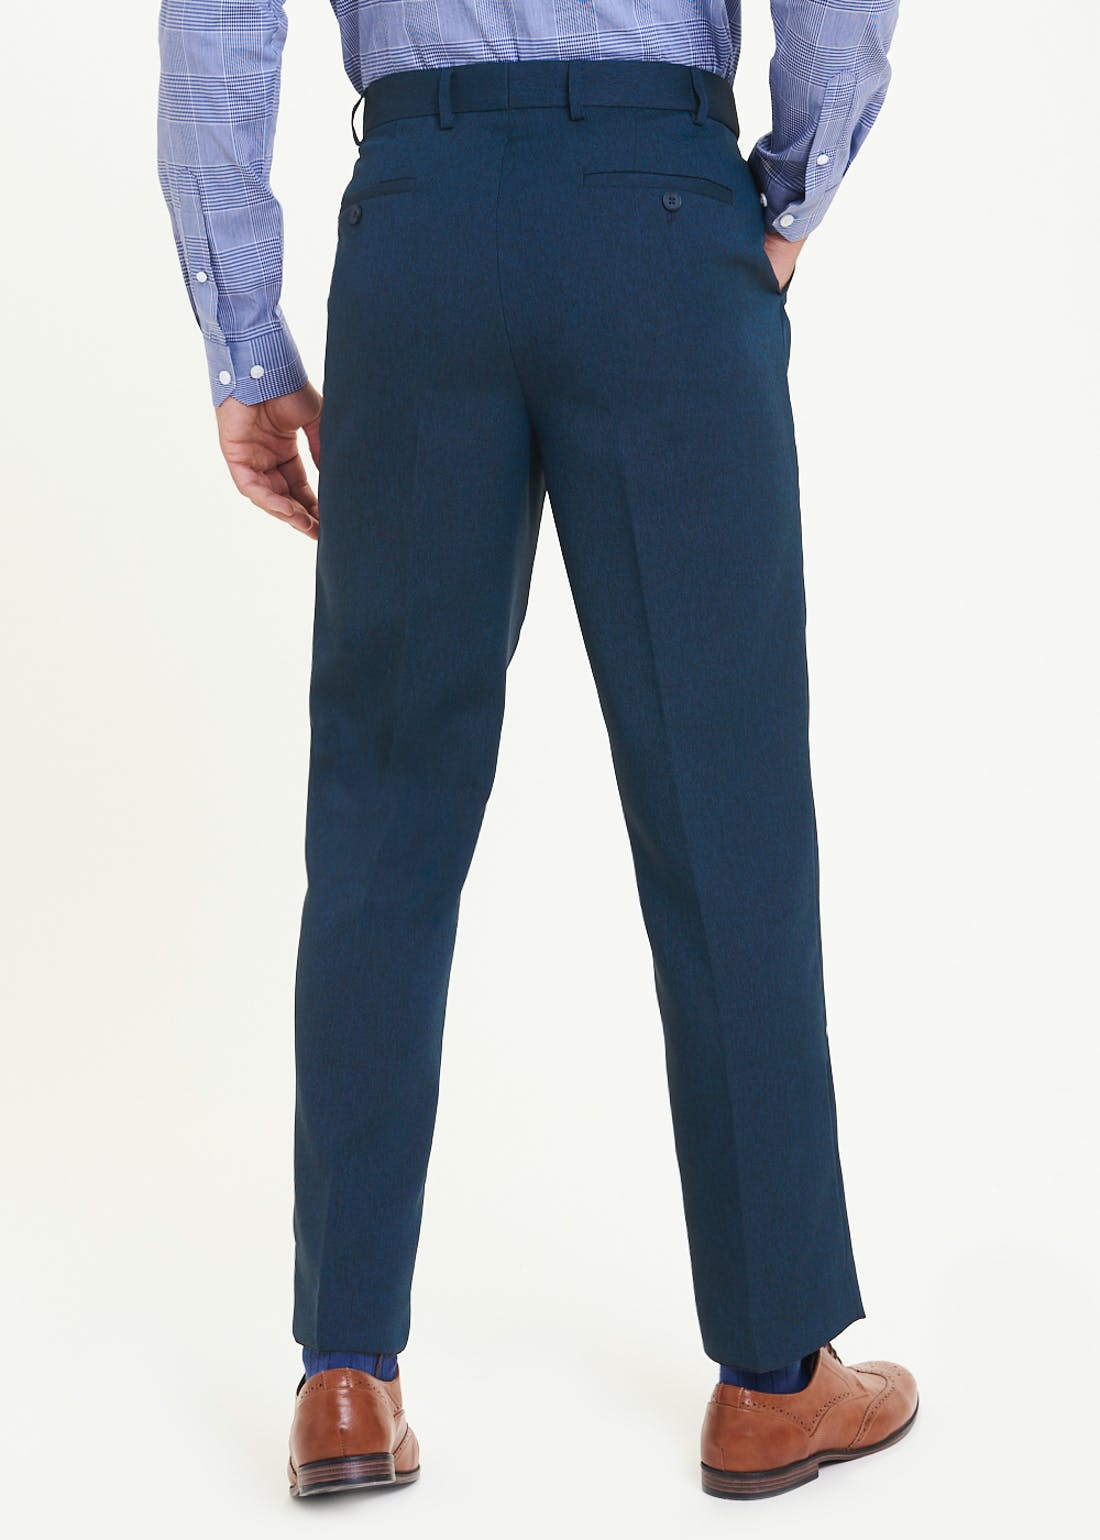 Taylor & Wright Donegal Flexi Waist Trousers